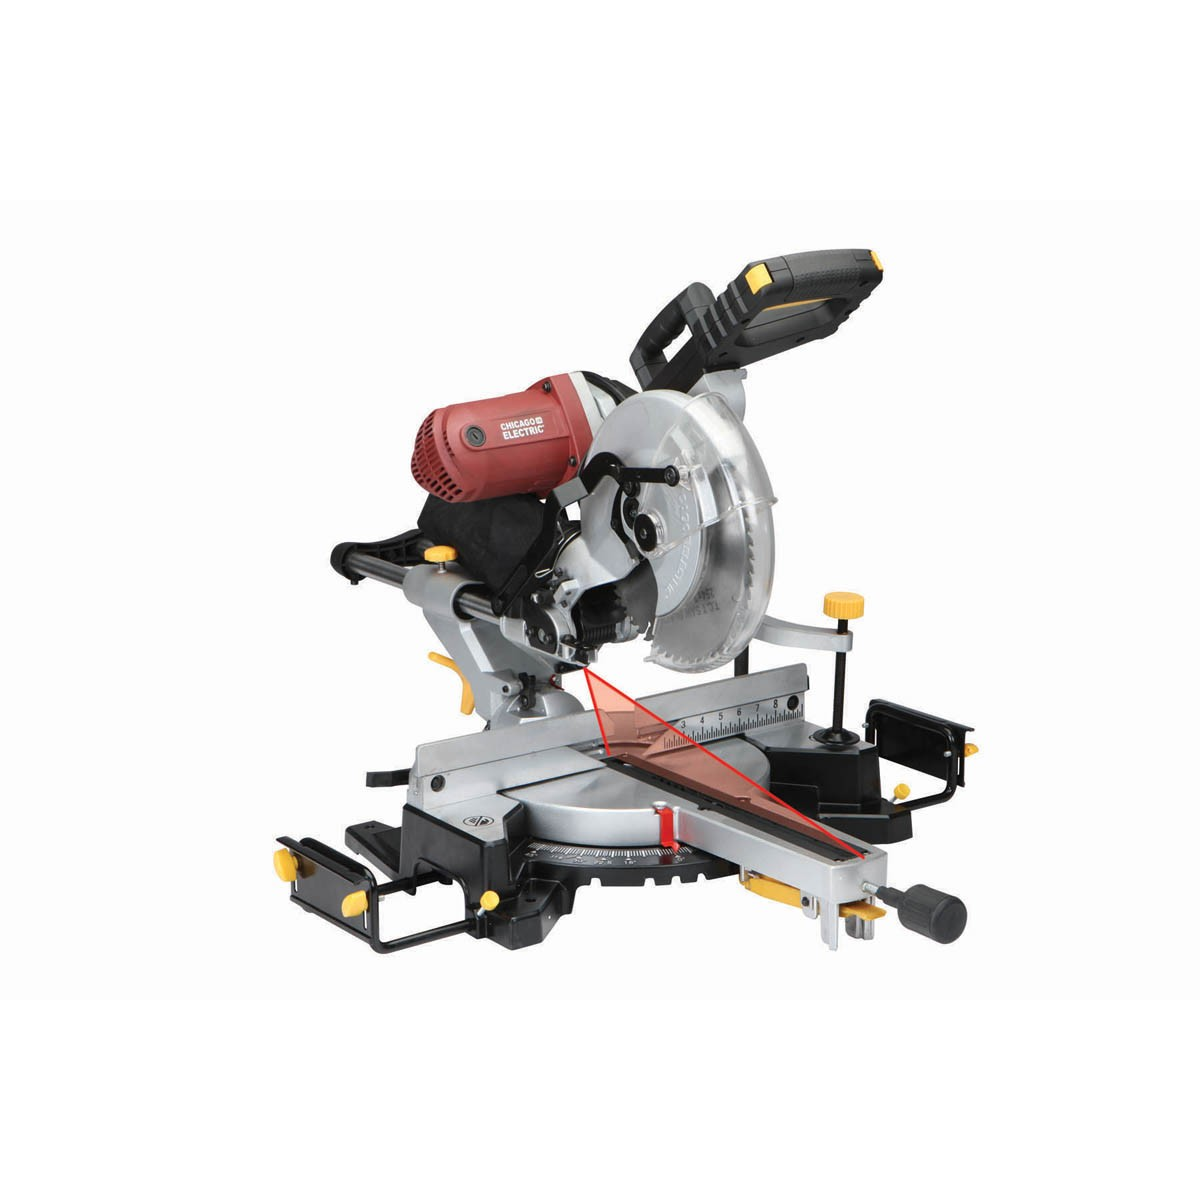 Chicago Electric Power Tools 12 In. Double-Bevel Sliding Compound Miter Saw With Laser Guide System